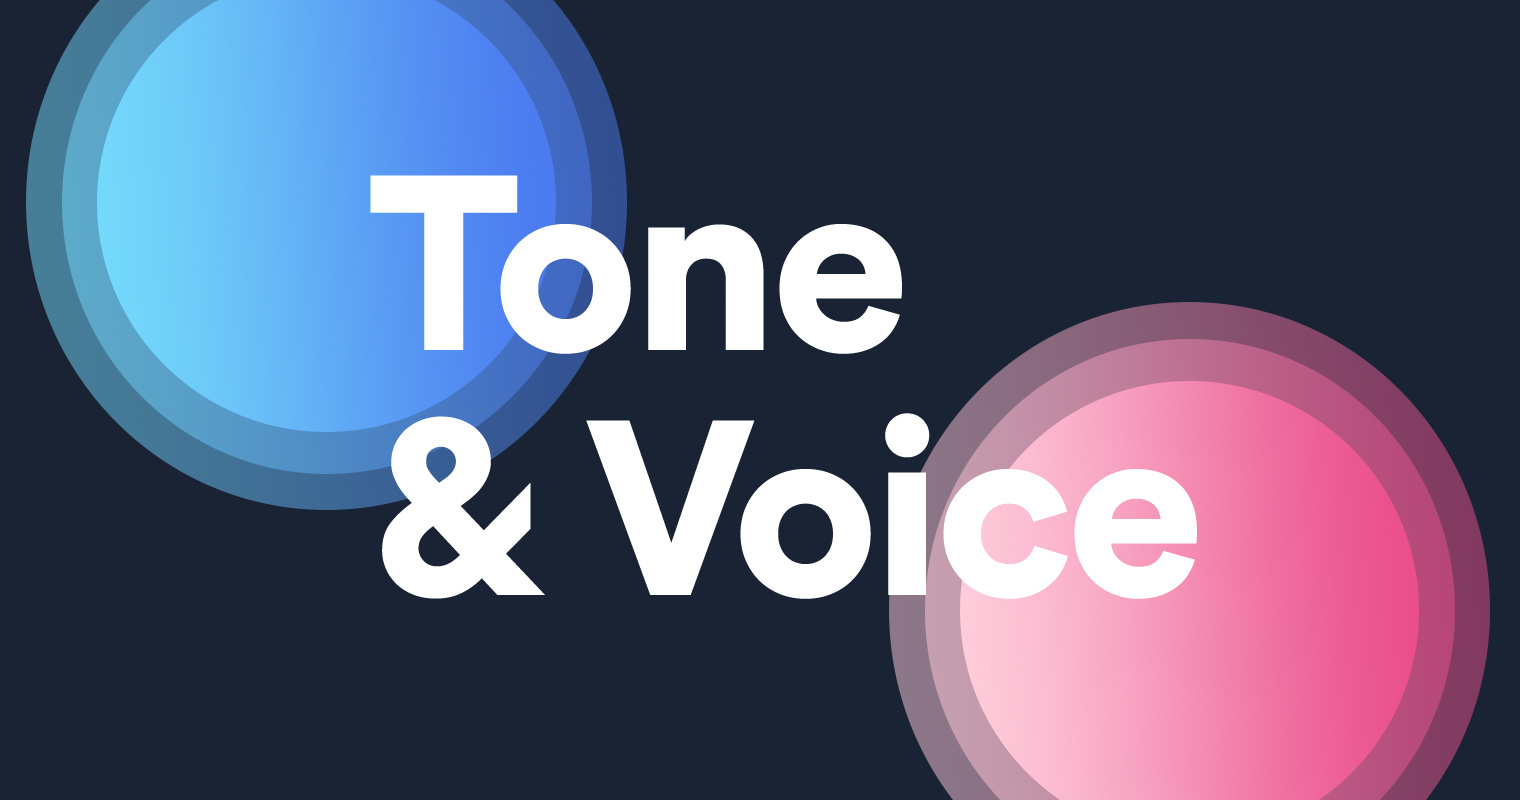 What S The Difference Between Tone And Voice